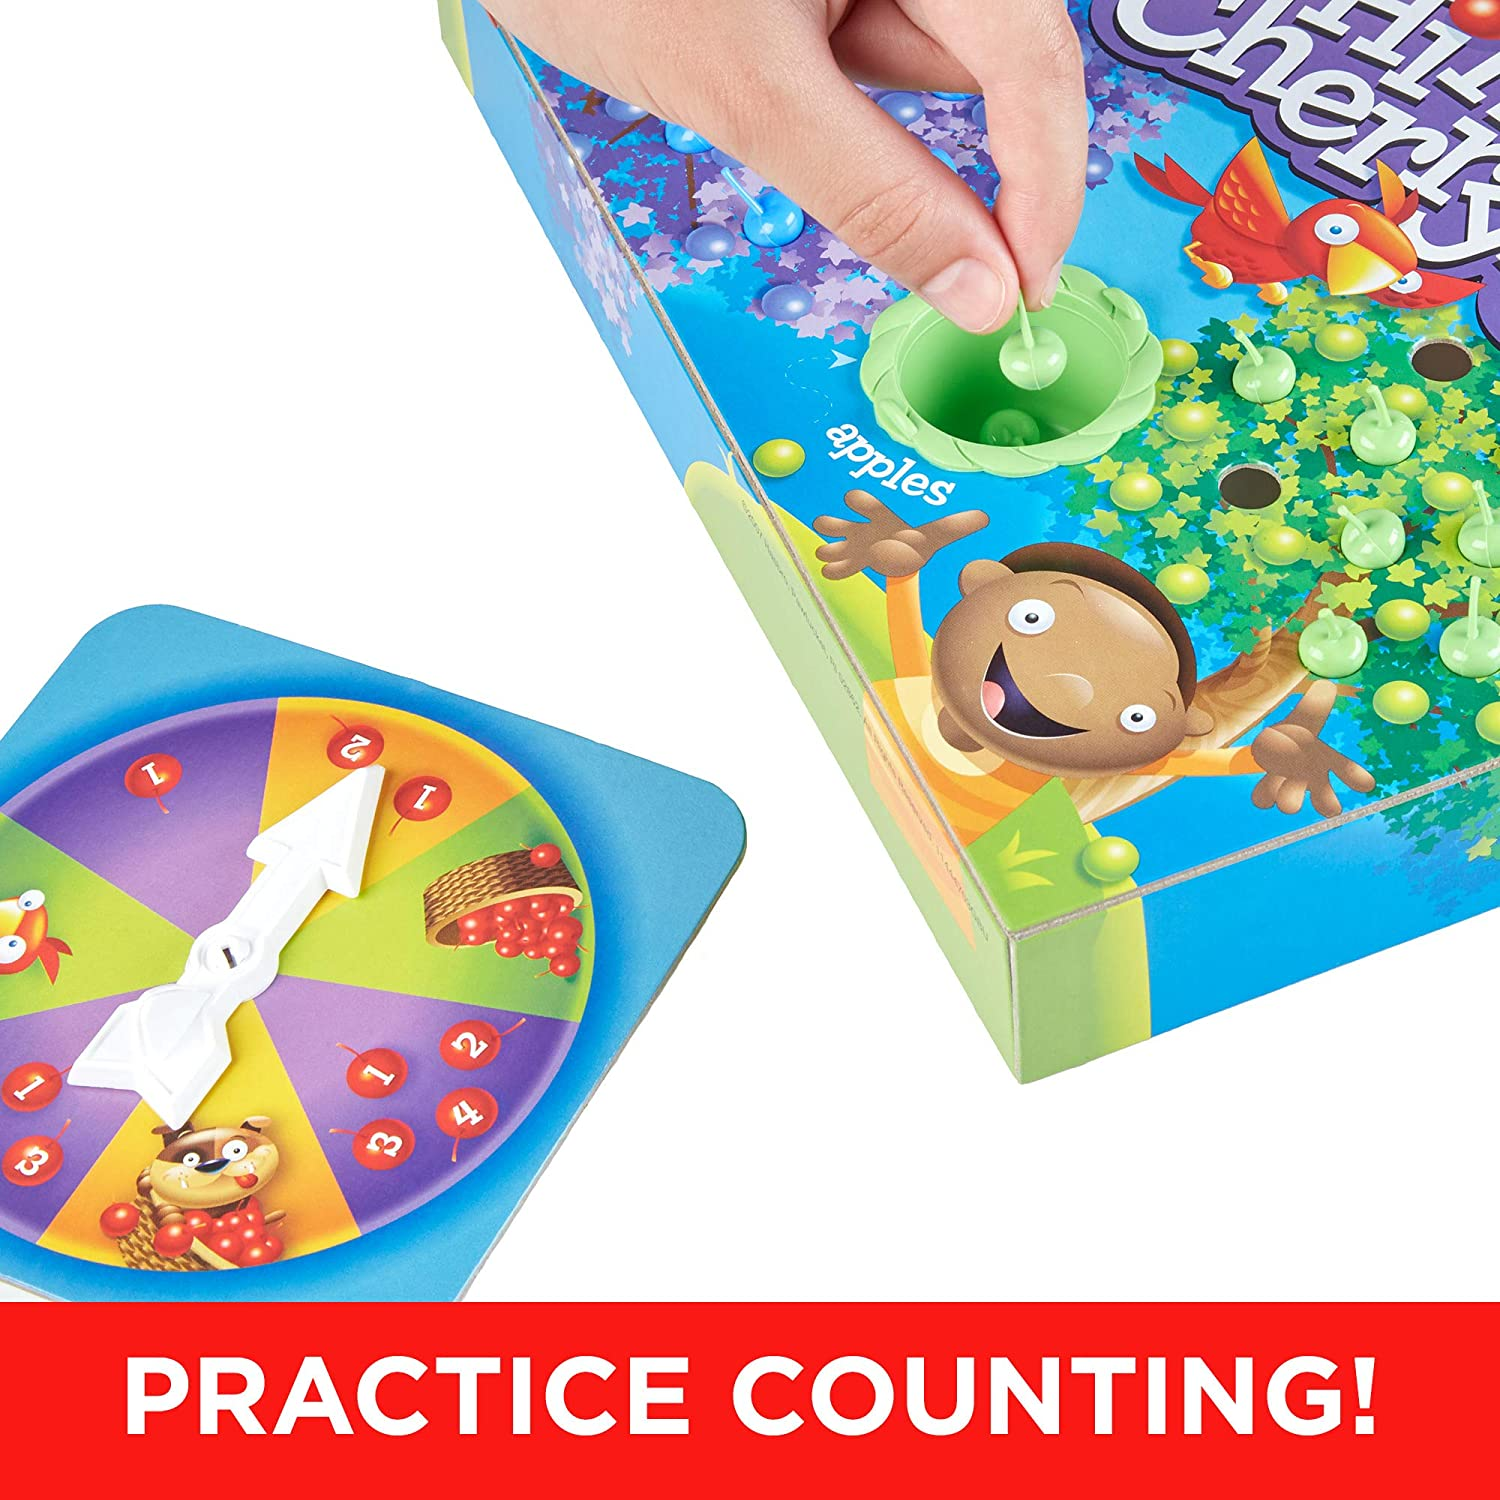 Details about  /Hi Ho Cherry-O Board Game Hasbro; Family Fun for Ages 3+; Challenges Kids/' Math